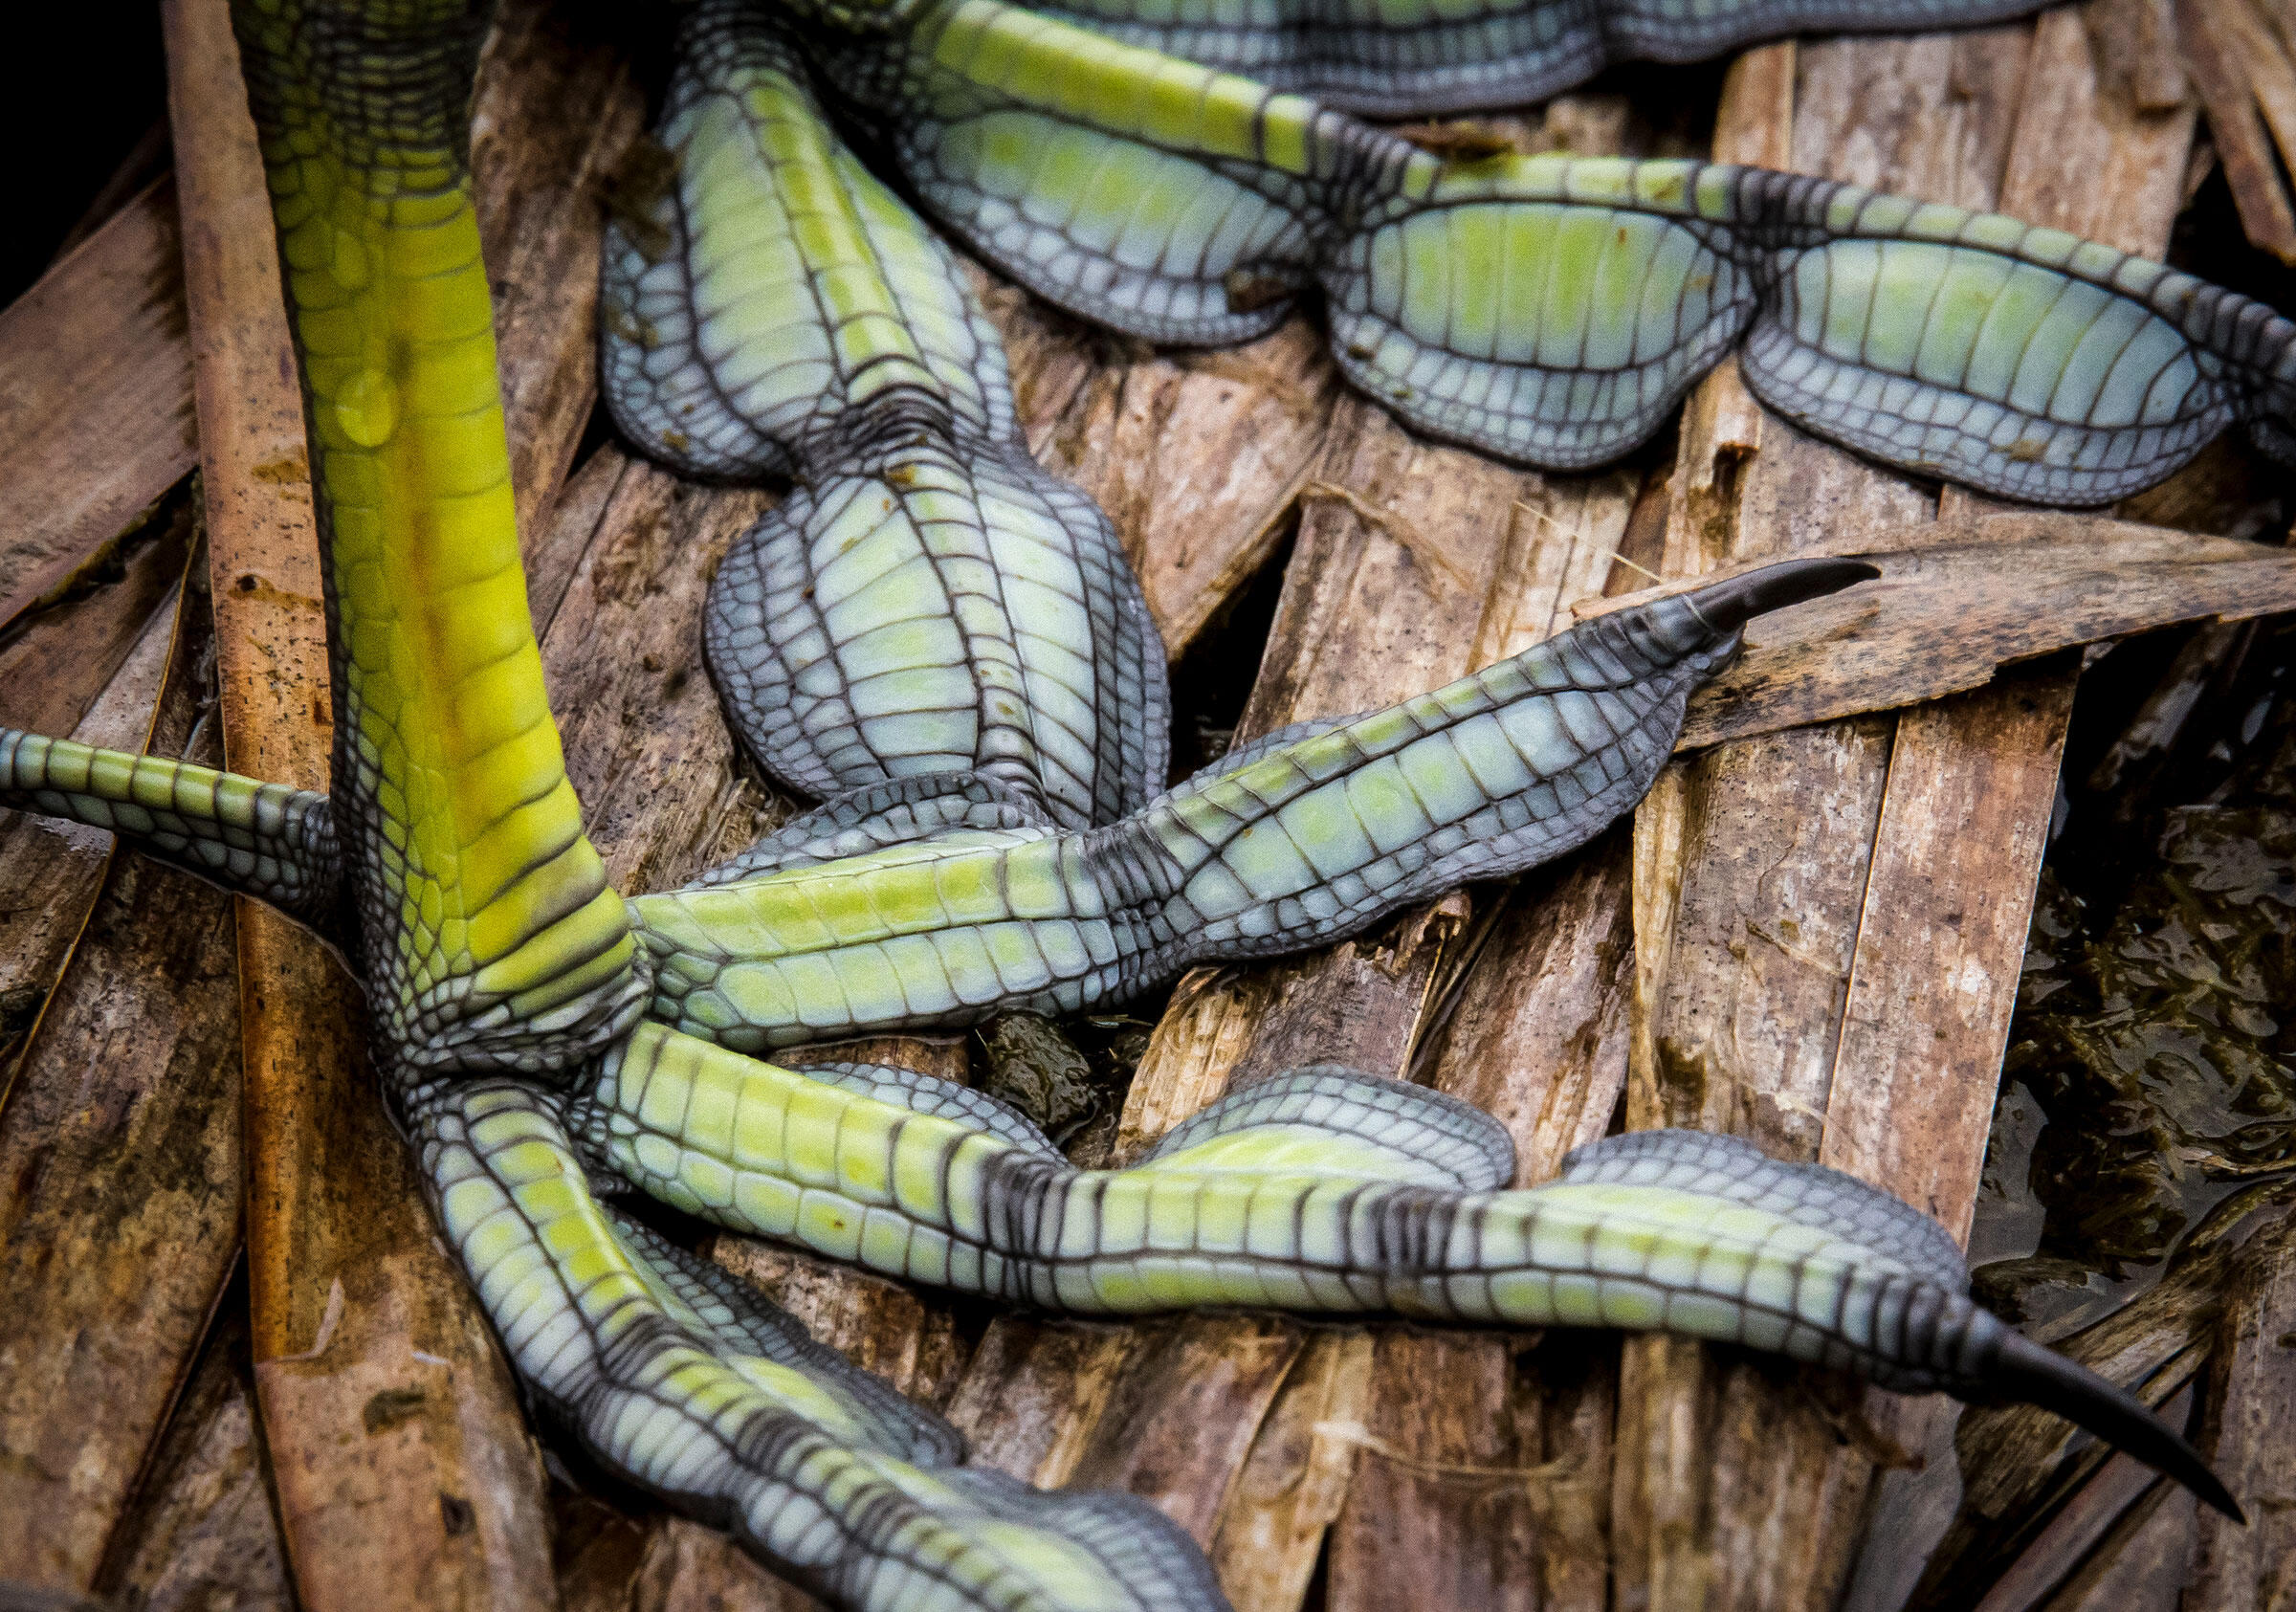 This stunning close-up of an American Coot's lobed feet landed in the 2018 Audubon Photography Awards Top 100. Kevin Malo